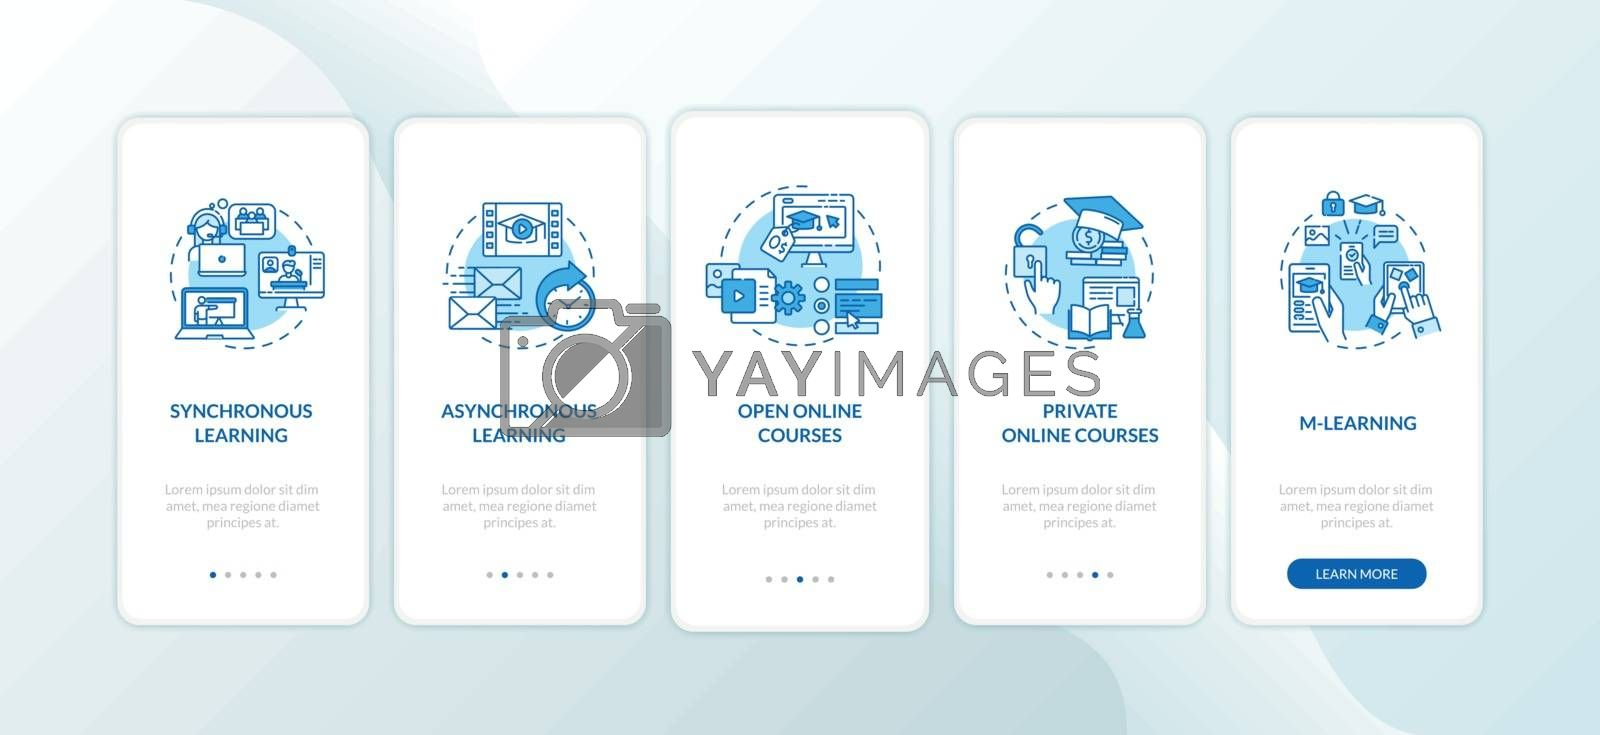 Distance learning types onboarding mobile app page screen with concepts. Synchronous learning. E learning walkthrough 5 steps graphic instructions. UI vector template with RGB color illustrations